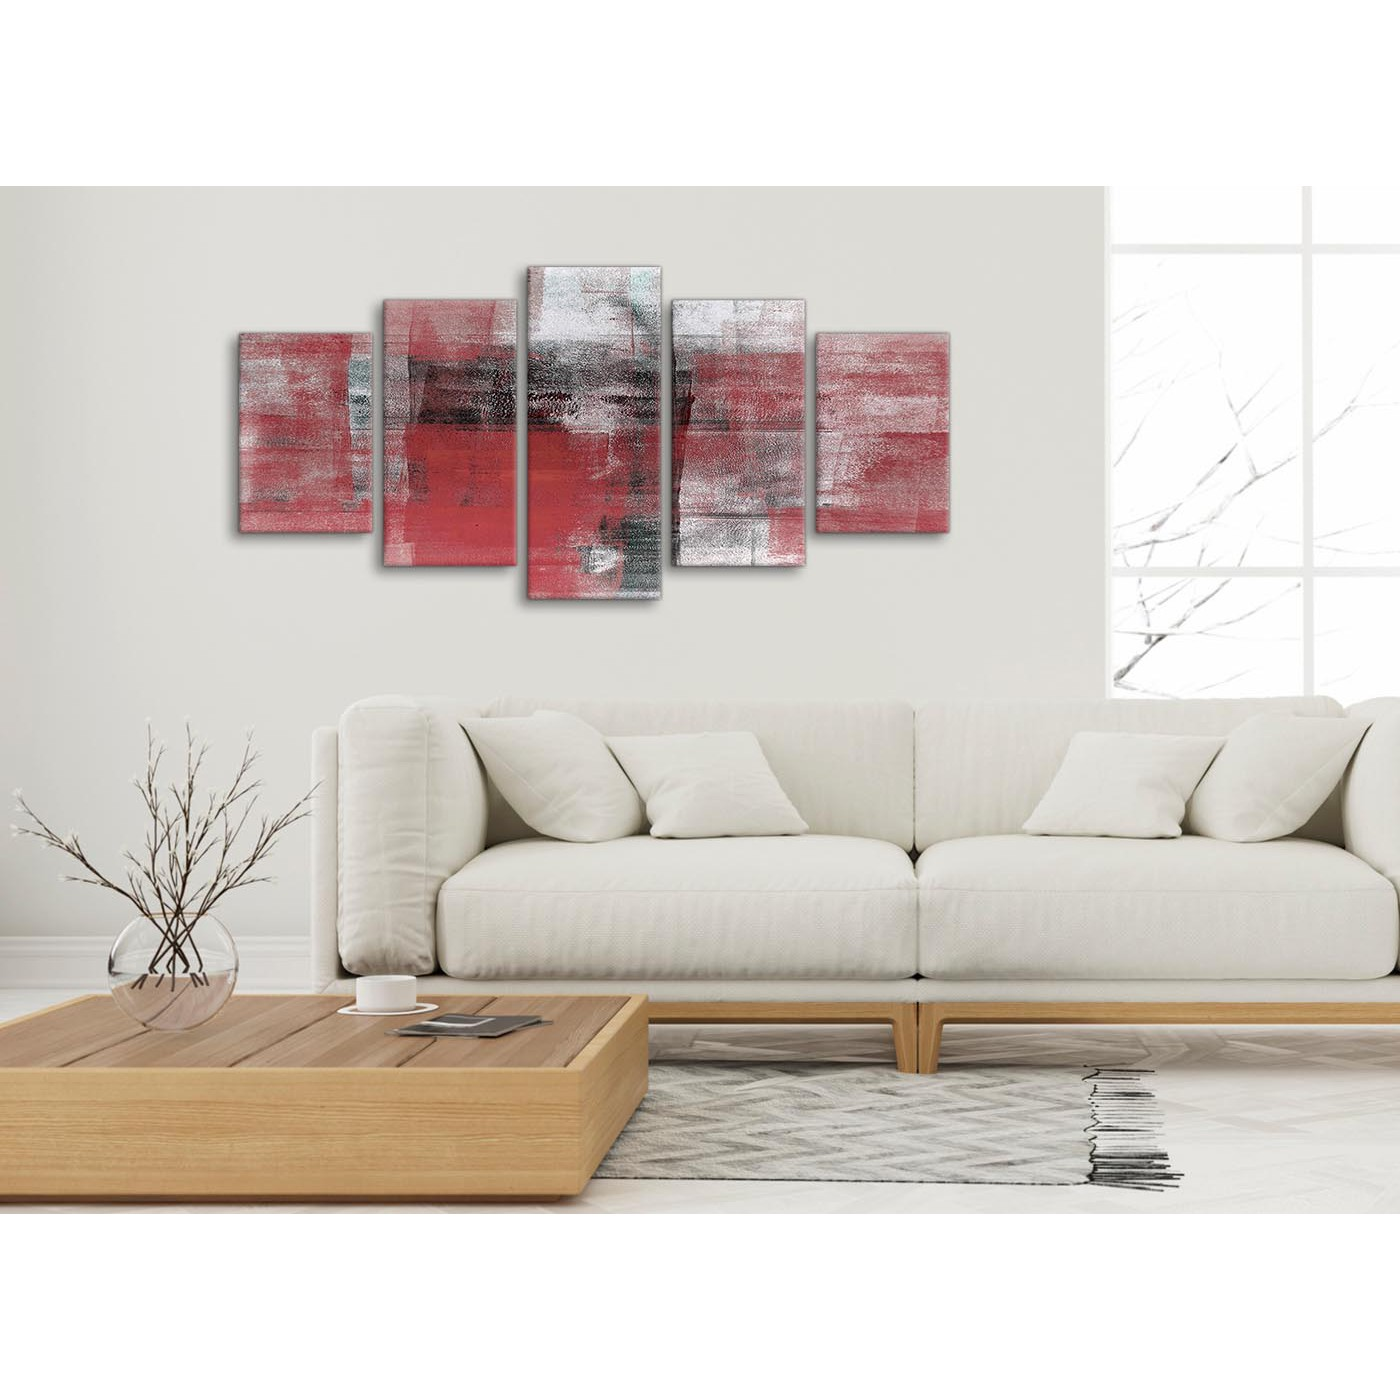 Display Gallery Item 3 Set Of 5 Piece Red Black White Painting Abstract Dining Room Canvas Pictures Decor